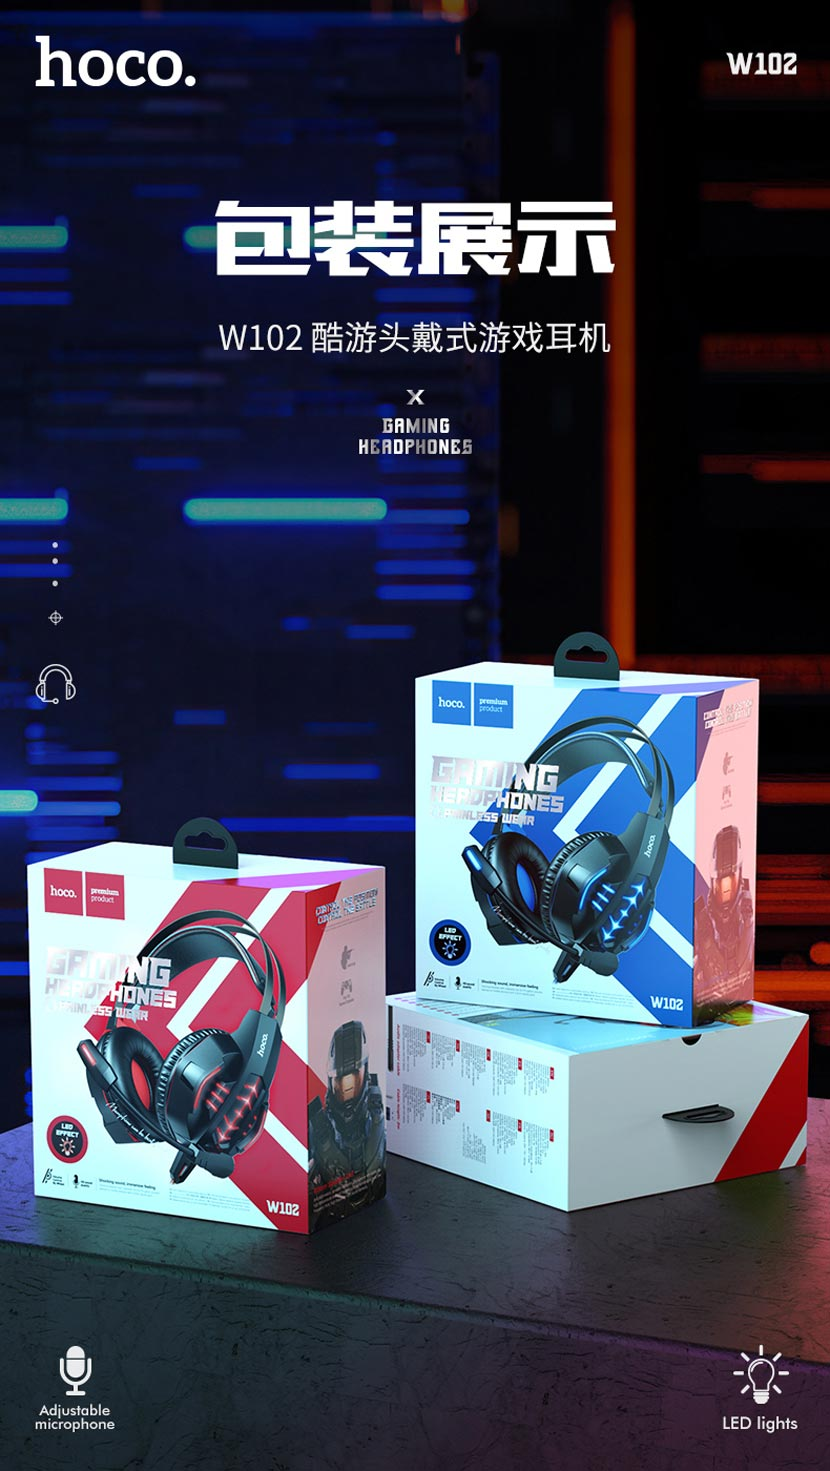 hoco news w102 cool tour gaming headphones package cn